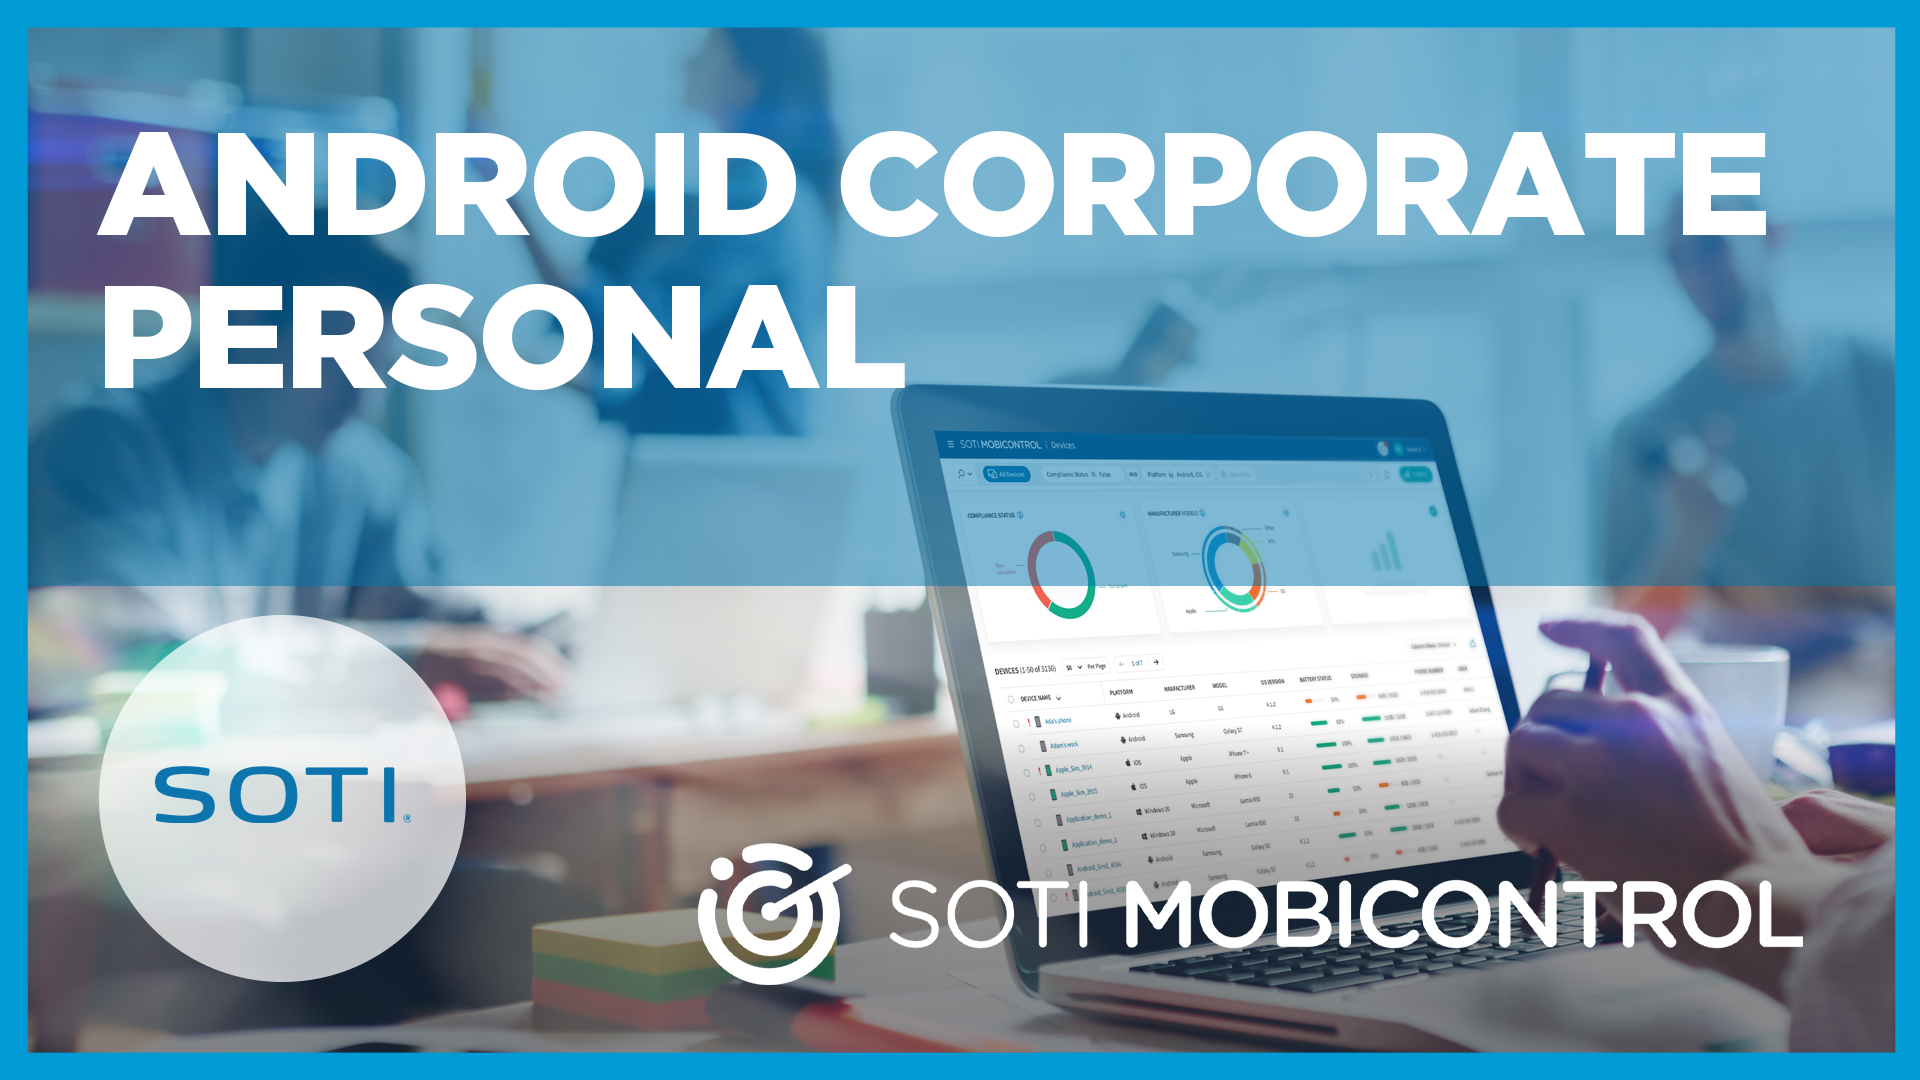 SOTI MobiControl Android Corporate Personal Video